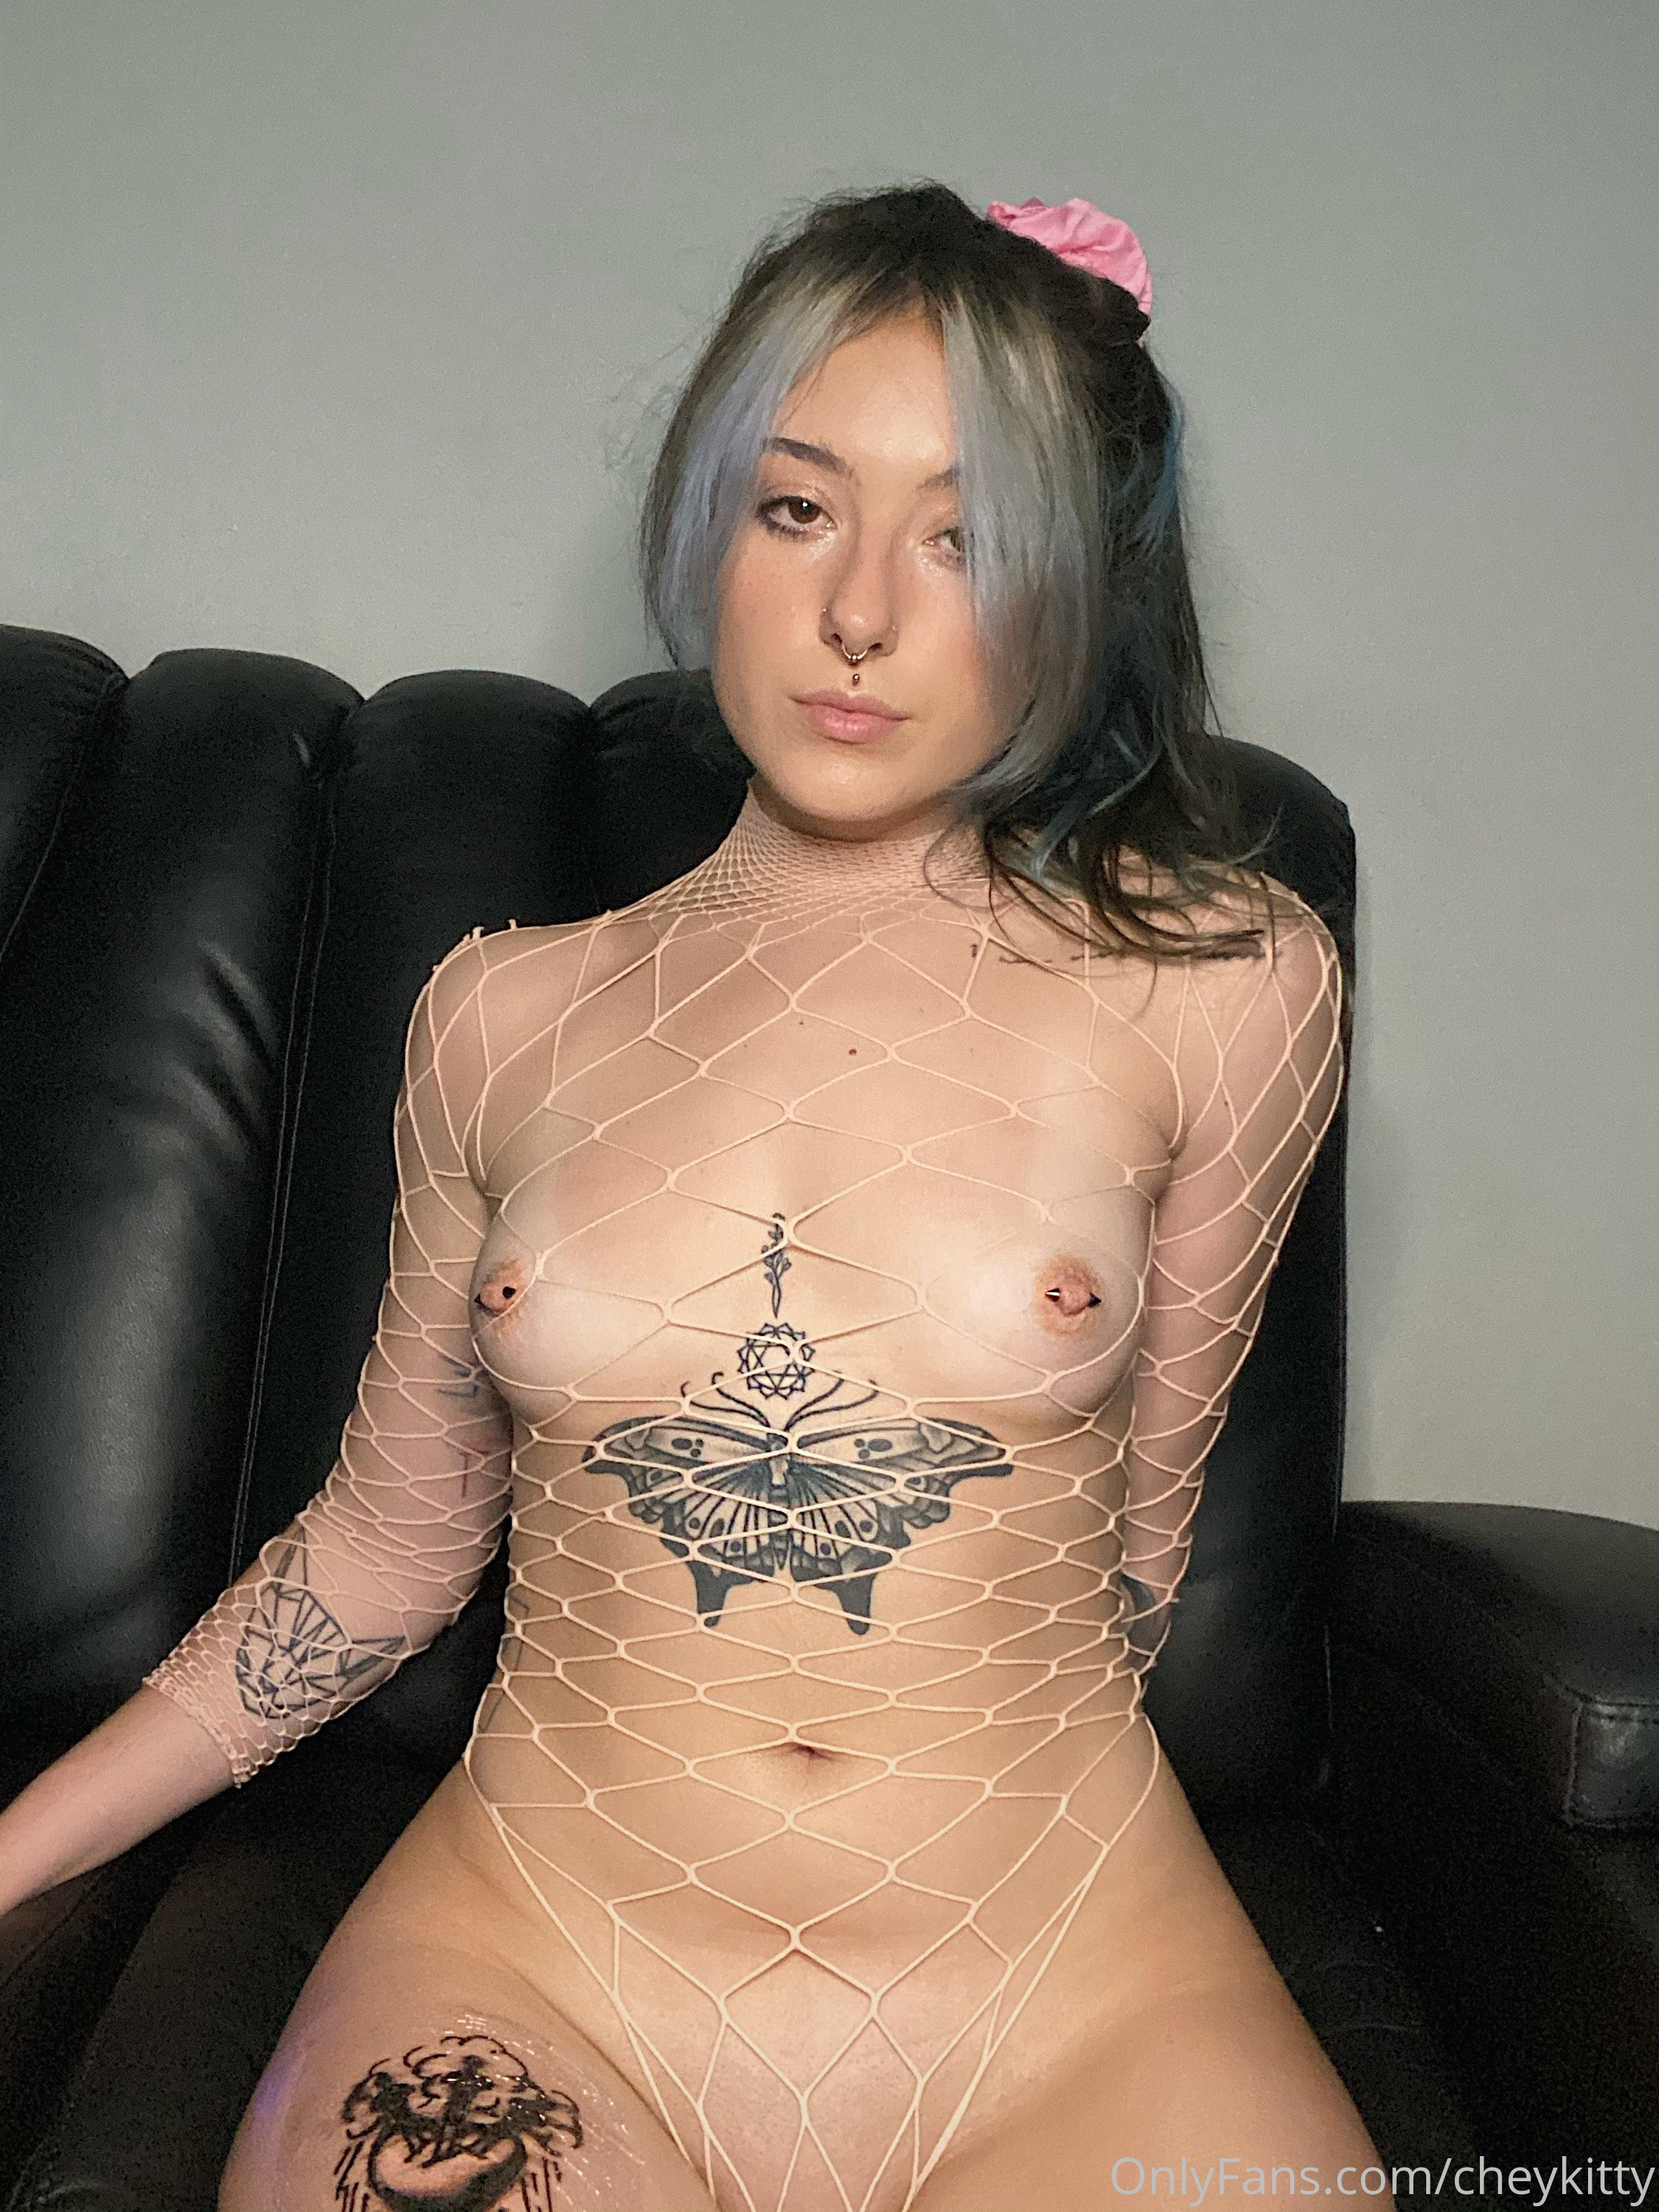 Cheykitty Onlyfans Leaked 0065